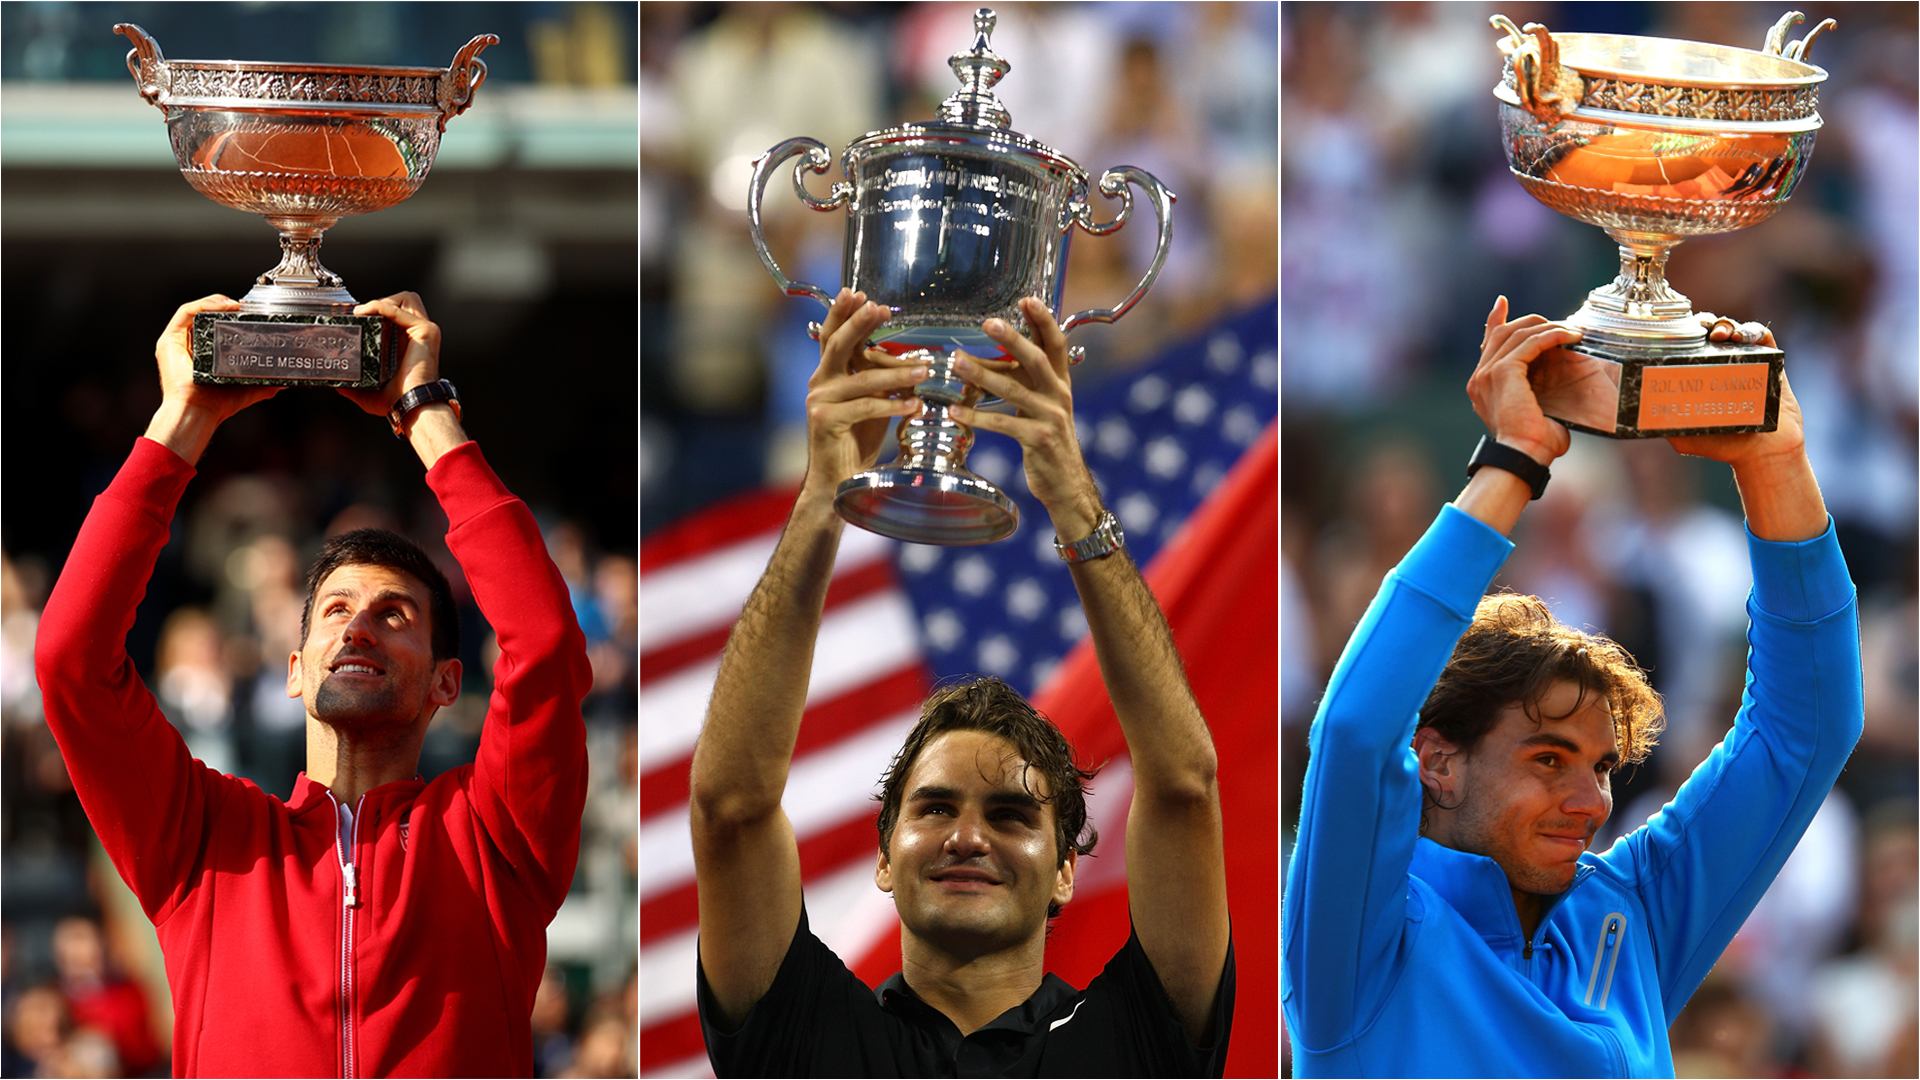 Australian Open 2020: Most dominant grand-slam periods of 'Big Three' as Djokovic eyes fifth title in seven